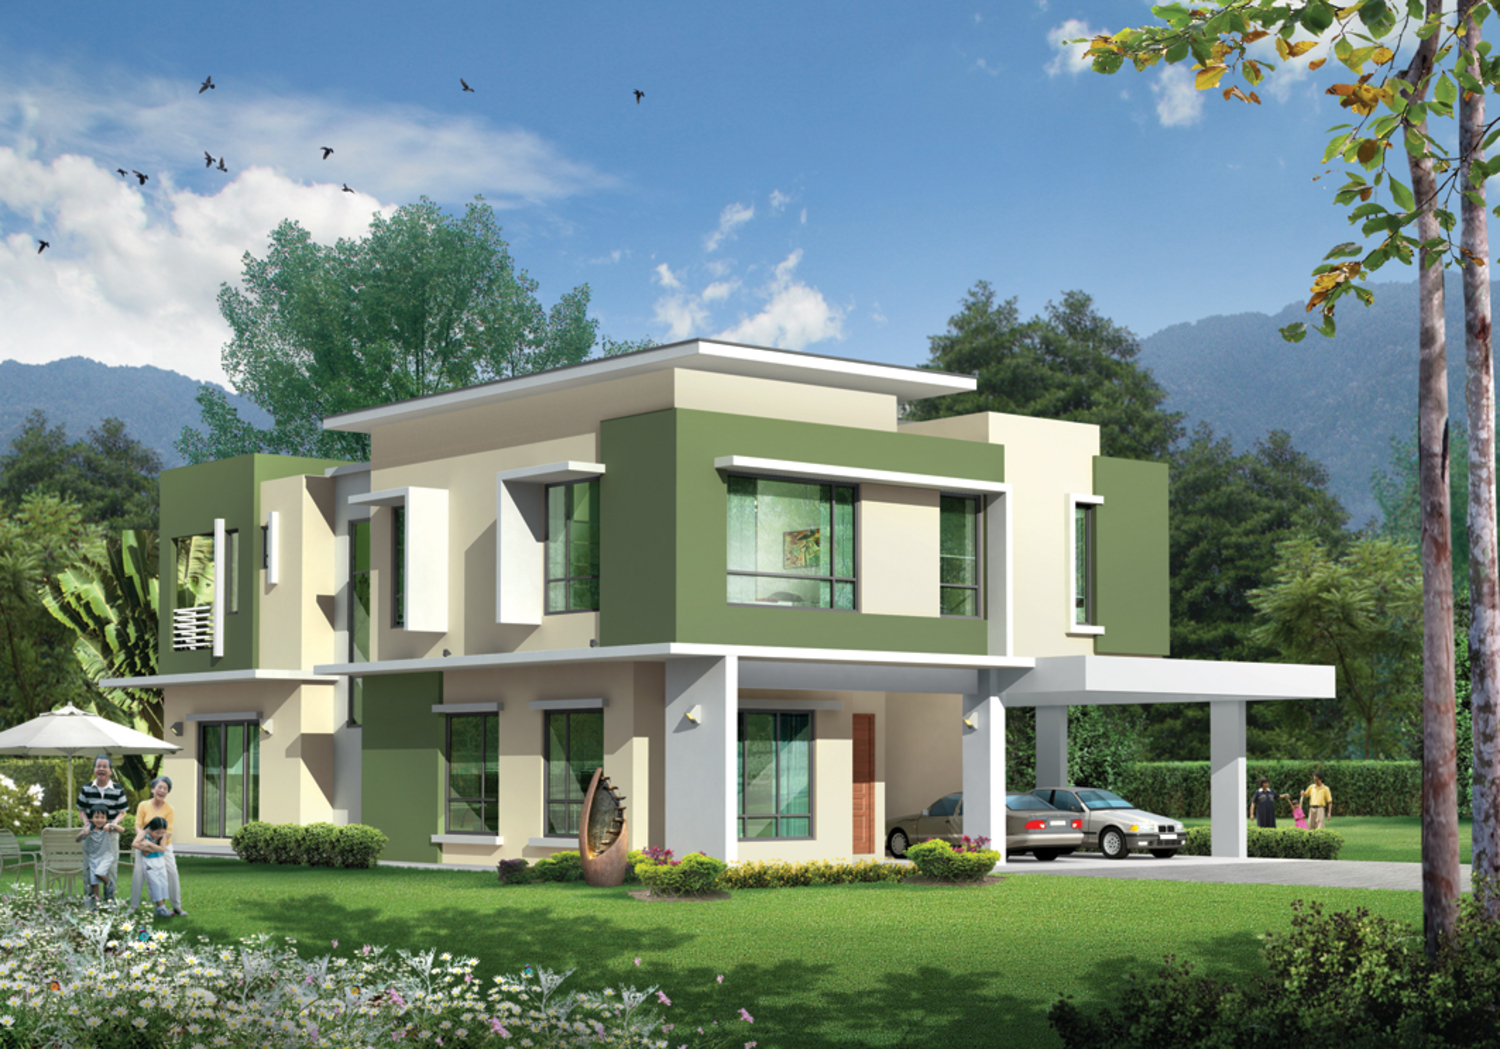 Double Storey Bungalow-PHASE 2 (9 UNITS)